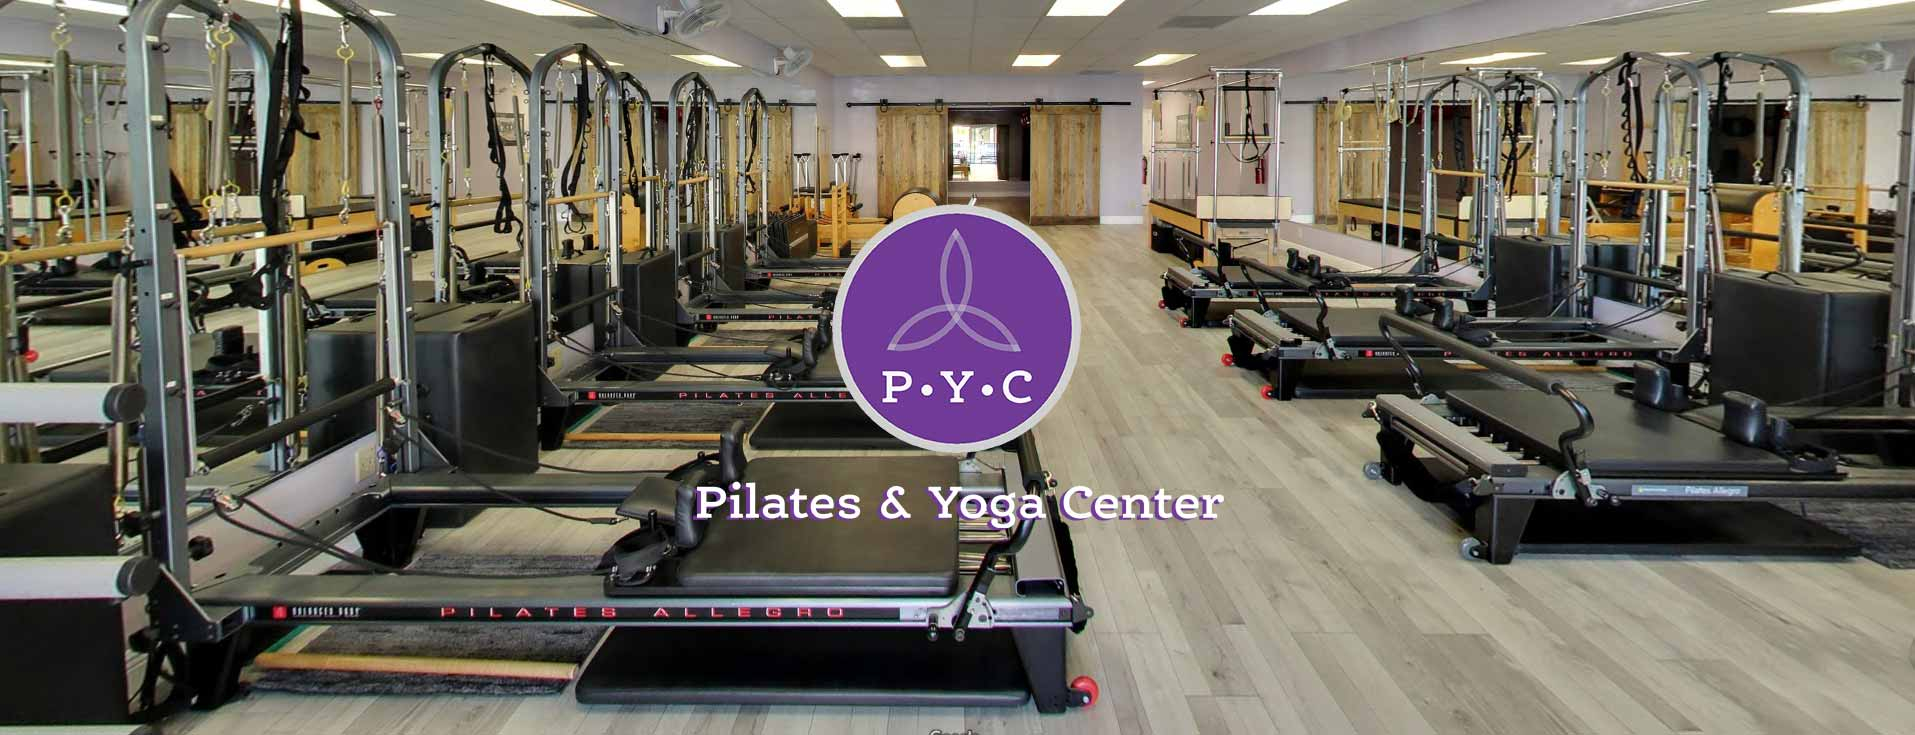 Pilates Yoga Center